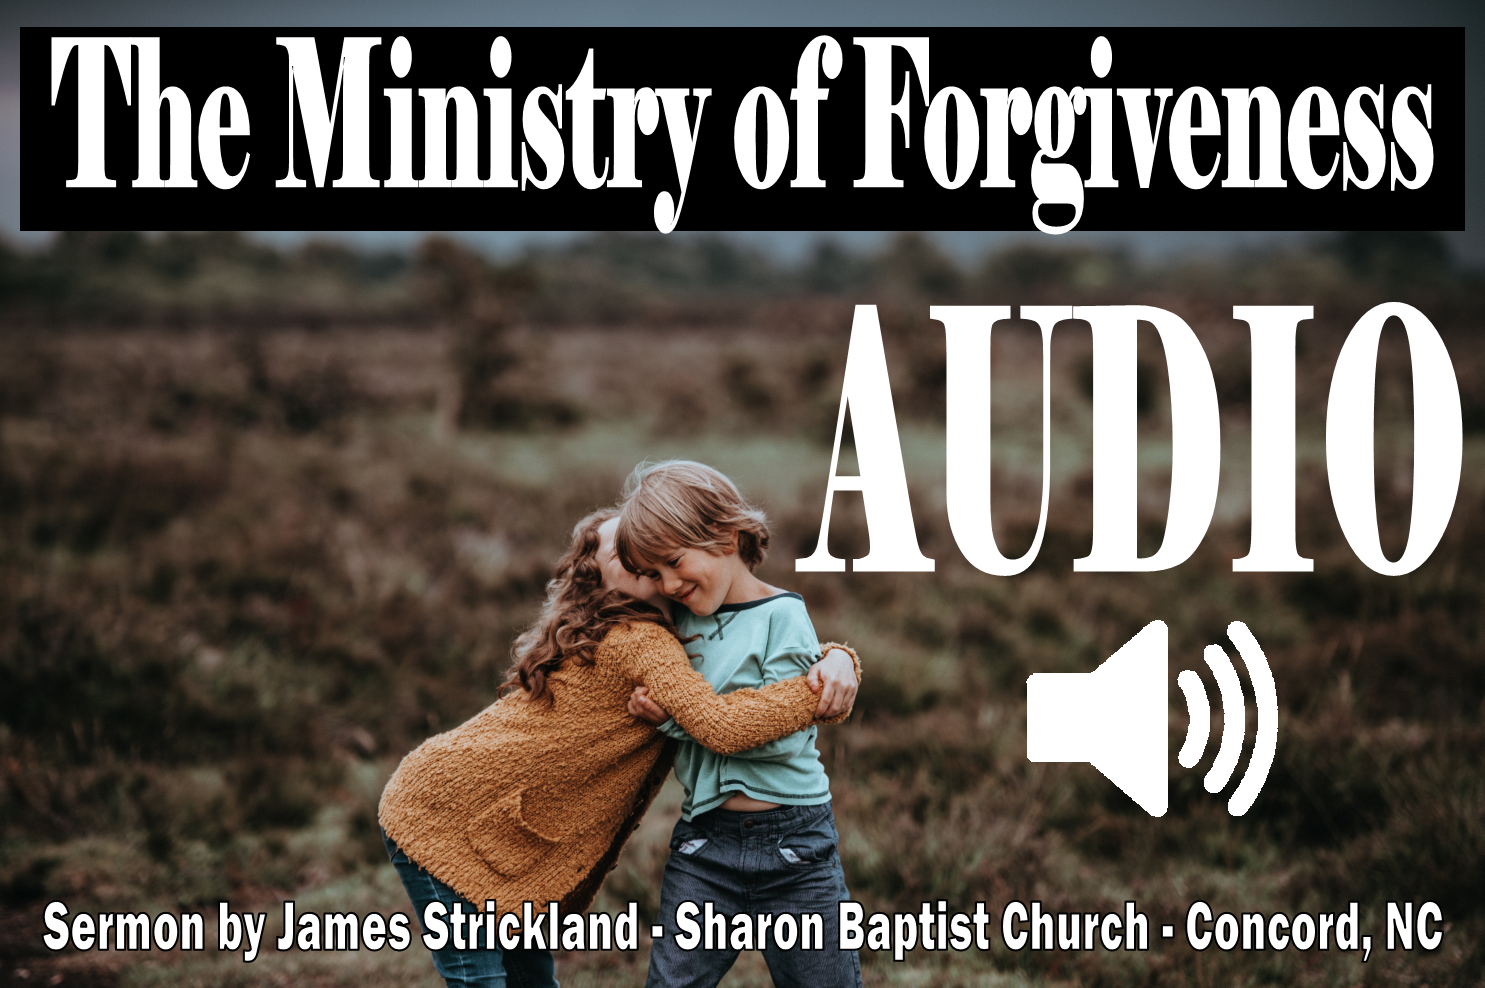 The Ministry of Forgiveness Sermon Audio